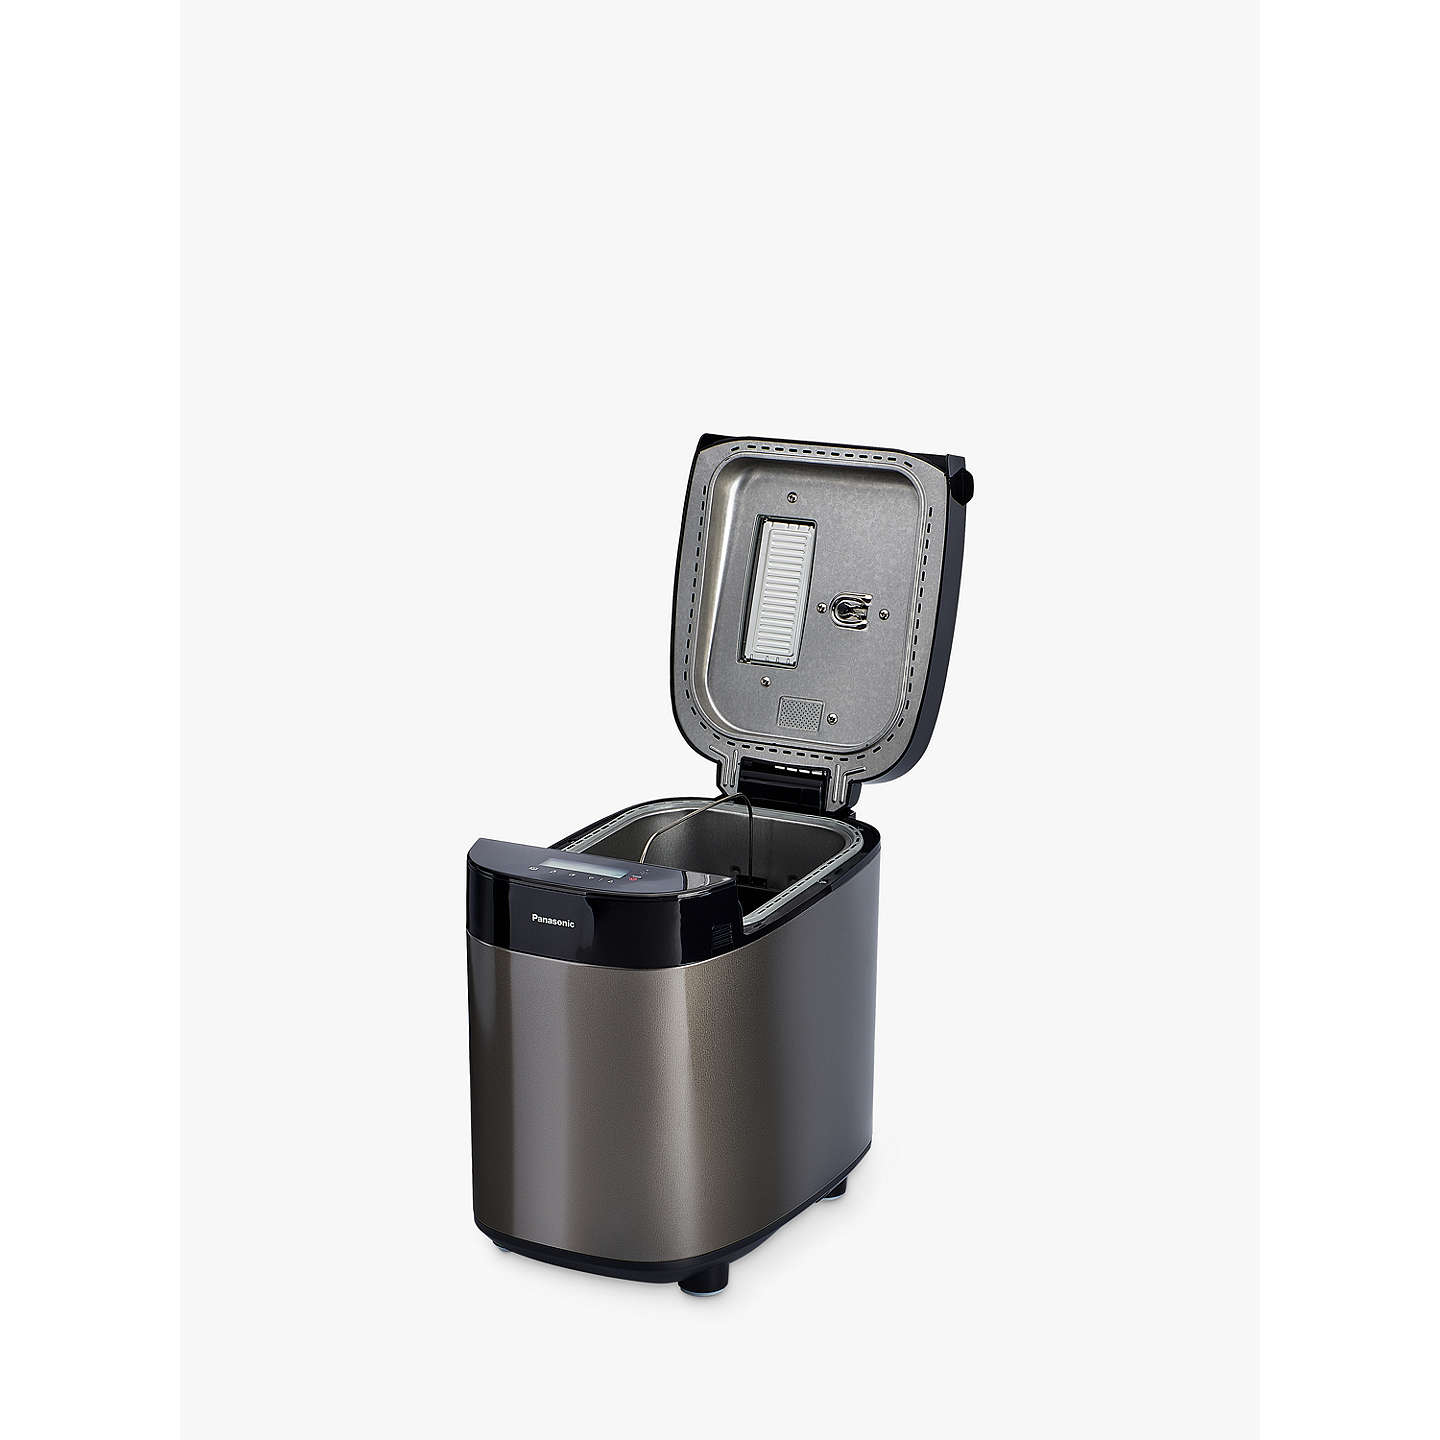 BuyPanasonic SD-ZX2522 Breadmaker, Black Online at johnlewis.com